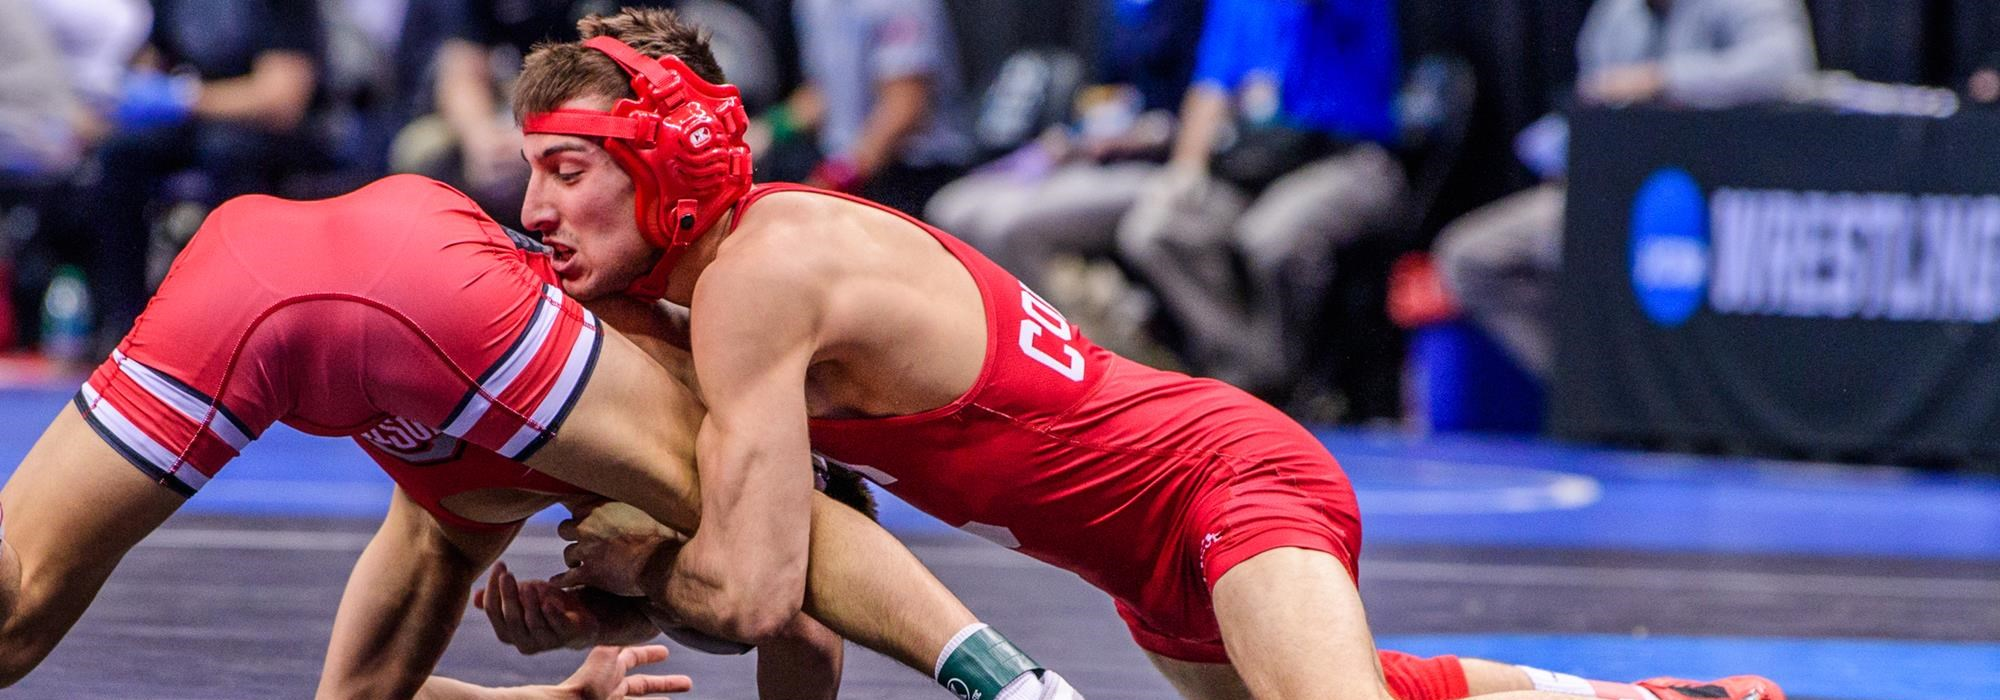 quality design 7108d 22090 Wrestlers compete in the Prelim round at the 2019 NCAA Division 1 Wrestling  Championships at the